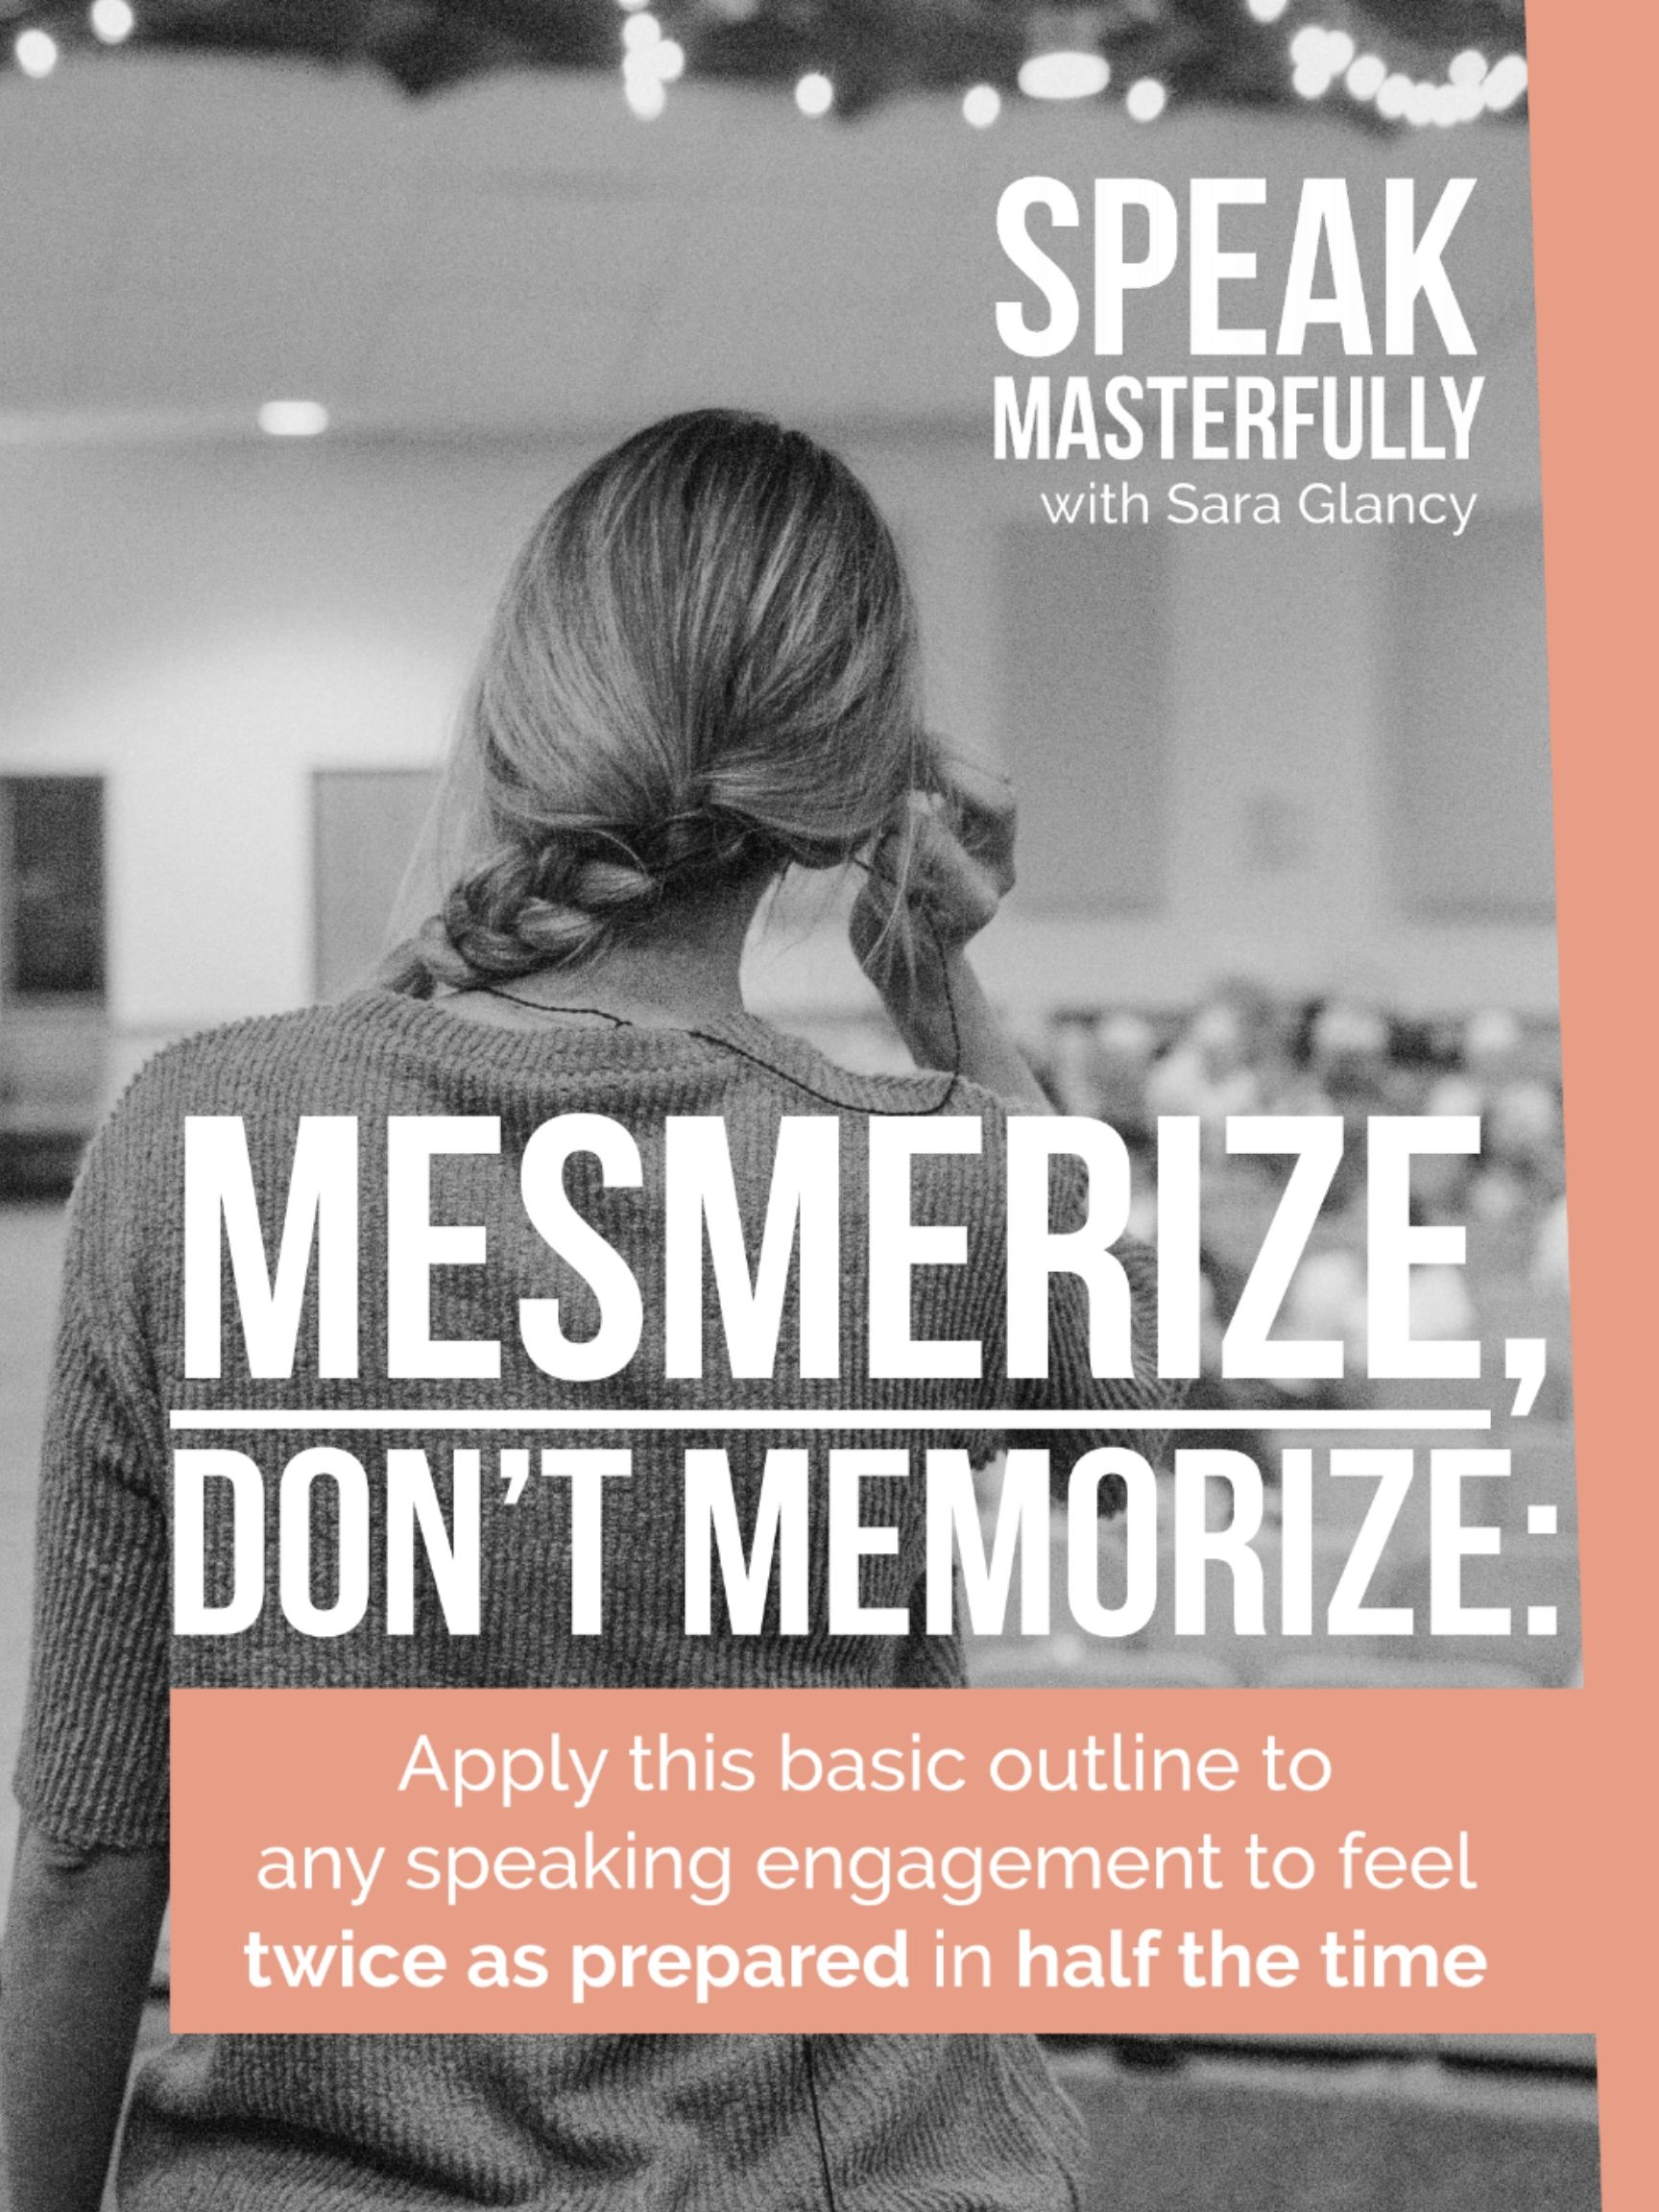 Girl standing in front of crowd. Text reads Mesmerize, Don't Memorize: Apply this basic outline to any speaking engagement to feel twice as prepared in half the time